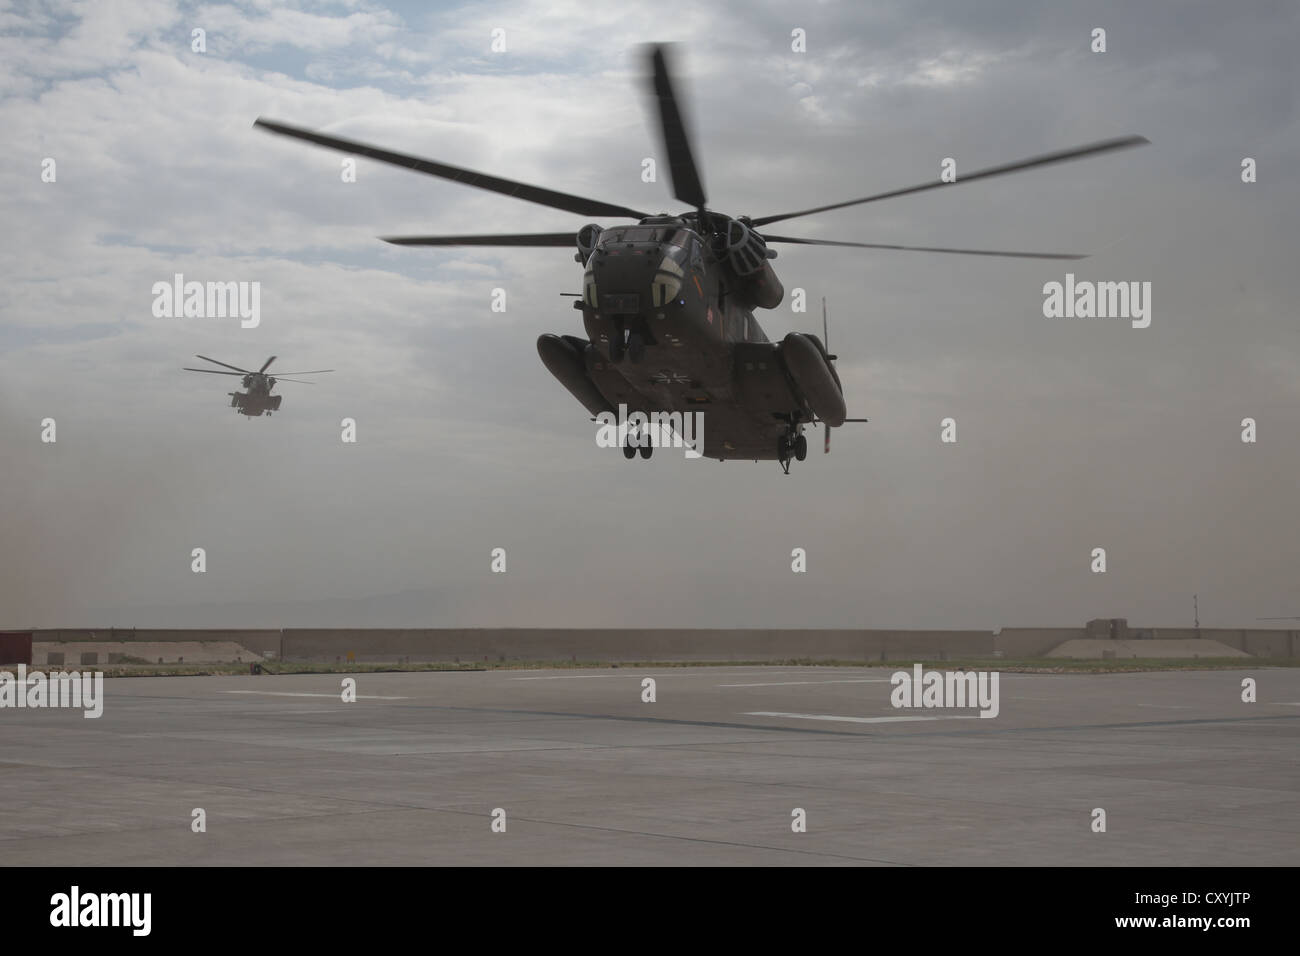 NATO ISAF PRT-Camp, landing of two German Army CH-53 helicopters of type CH-53 at the PRT Camp, Kunduz, Afghanistan, - Stock Image